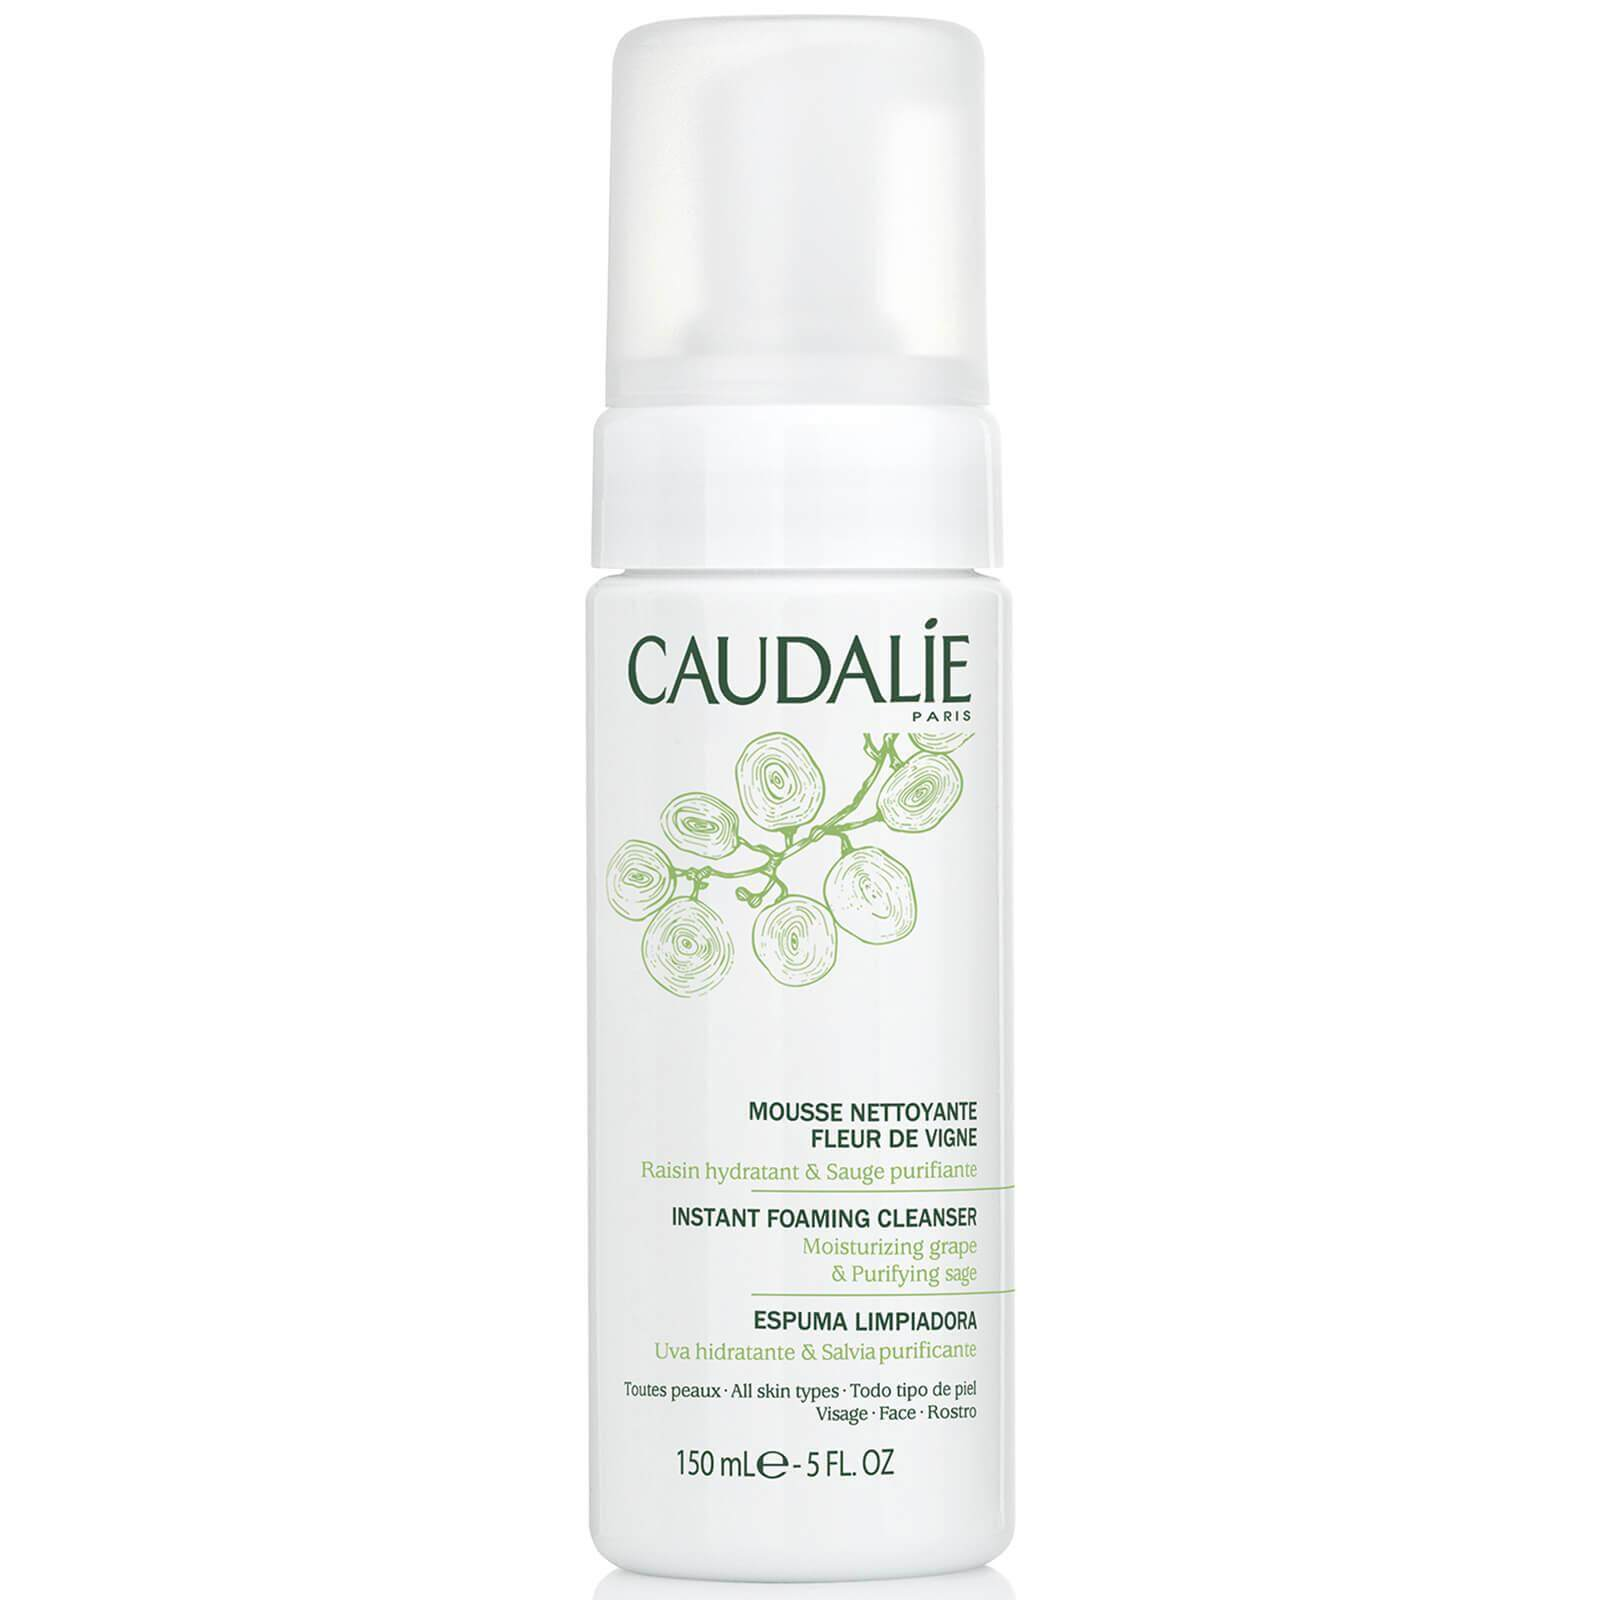 Caudalie Instant Foaming Cleanser (150ml) #makeuplogy